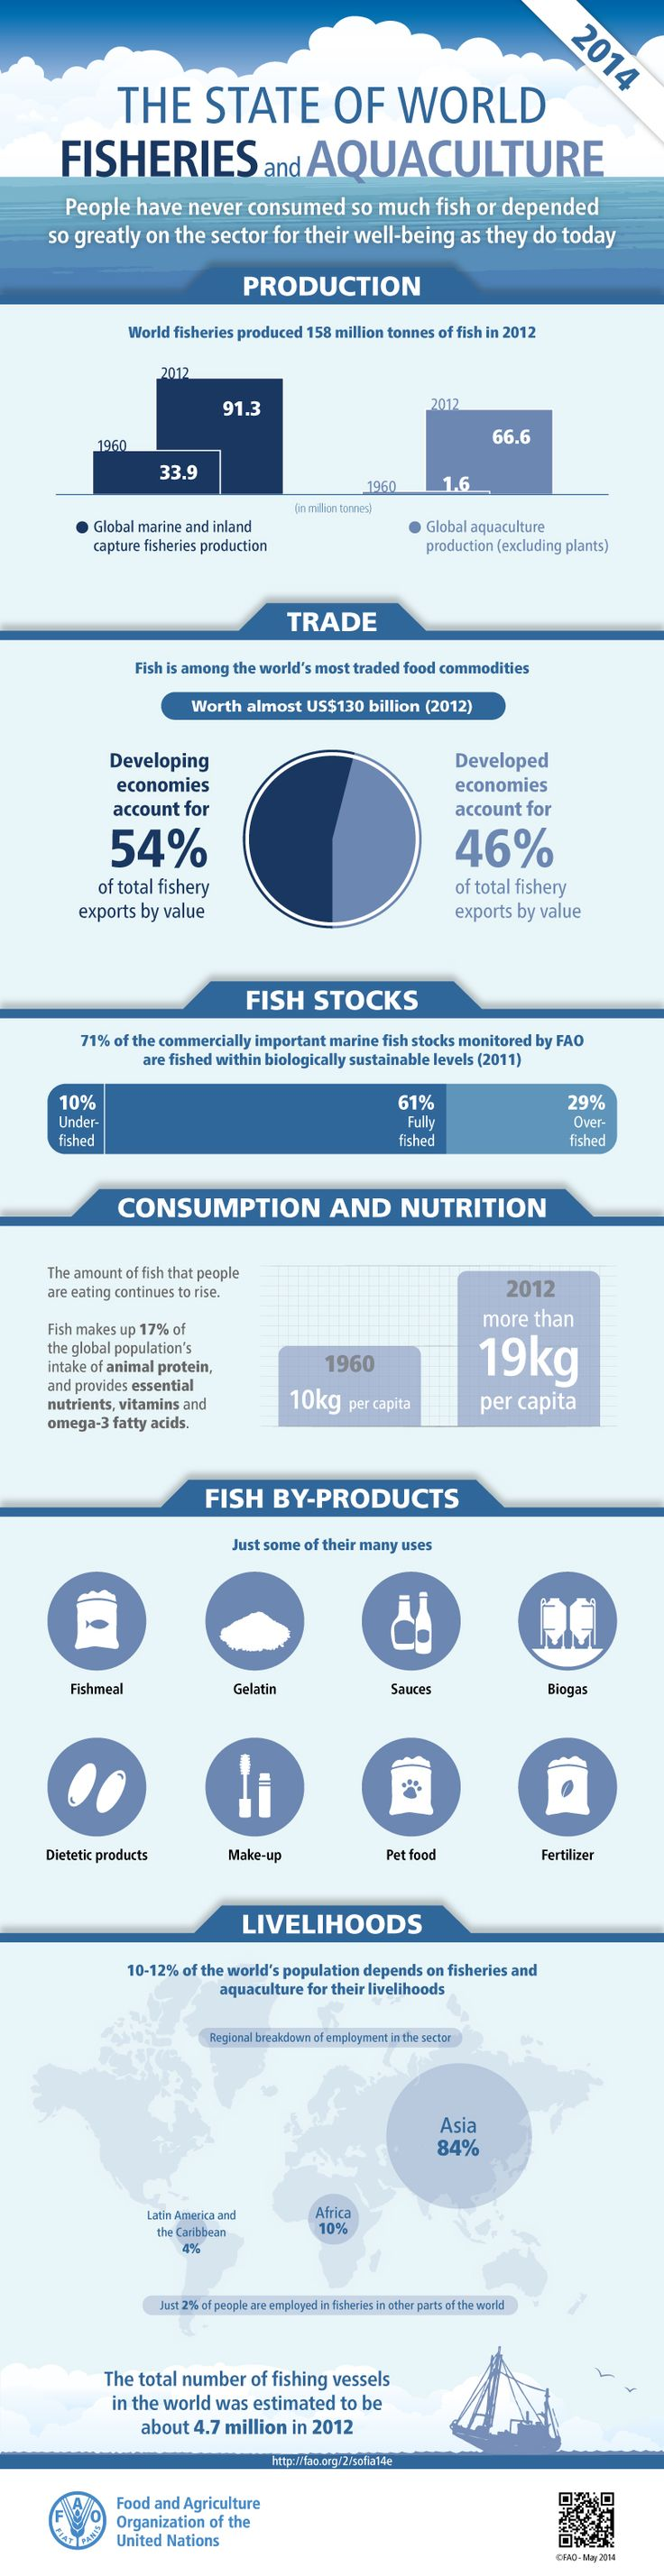 State of World Fisheries and Aquaculture.  People have never consumed so much fish or depended so greatly on the sector for their well-being as today. As the demand for fish increases, the sector is also striving to be more productive and sustainable and to enable more inclusive and efficient systems while reducing rural poverty and enhancing the resilience of livelihoods to disasters, crises and climate change.